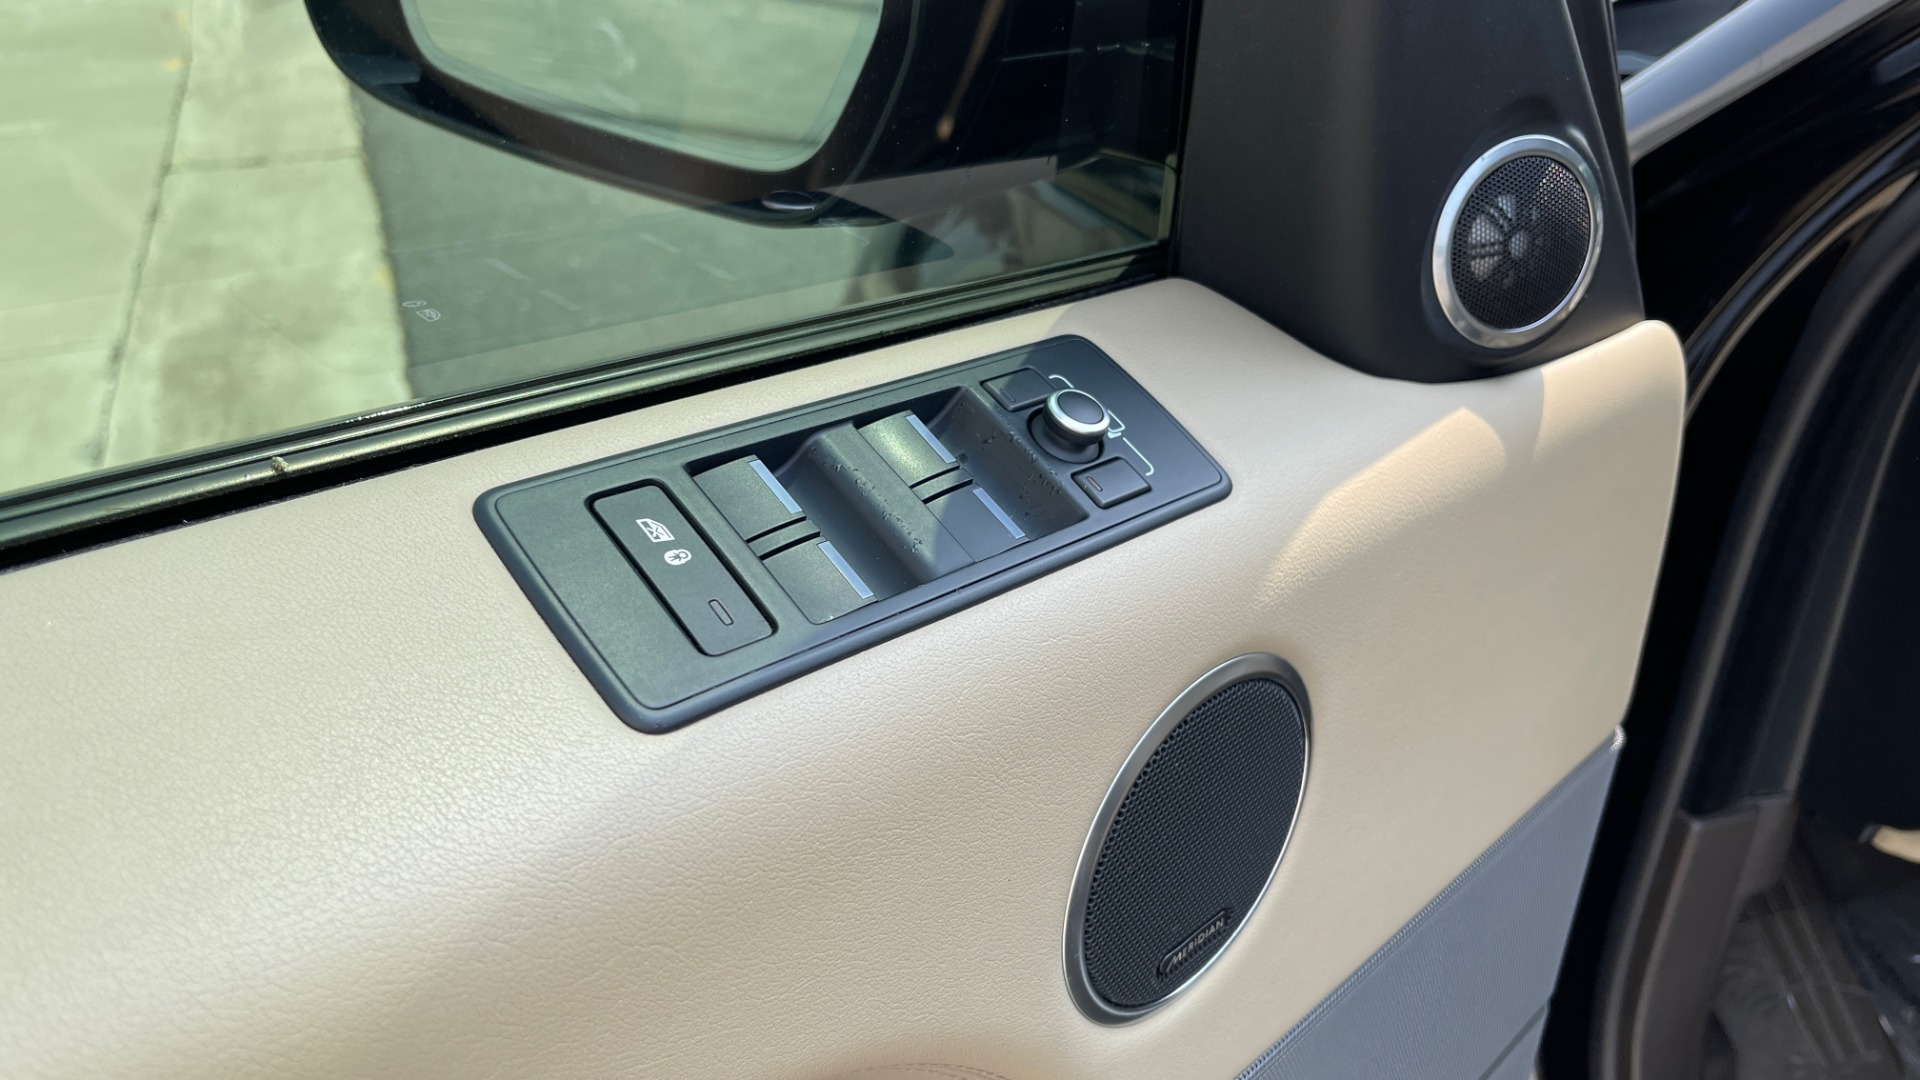 Used 2016 Land Rover RANGE ROVER SPORT V6 HSE / NAV / PANO-ROOF / MERIDIAN / CONSOLE COOLER / CAMERAS for sale $40,995 at Formula Imports in Charlotte NC 28227 28